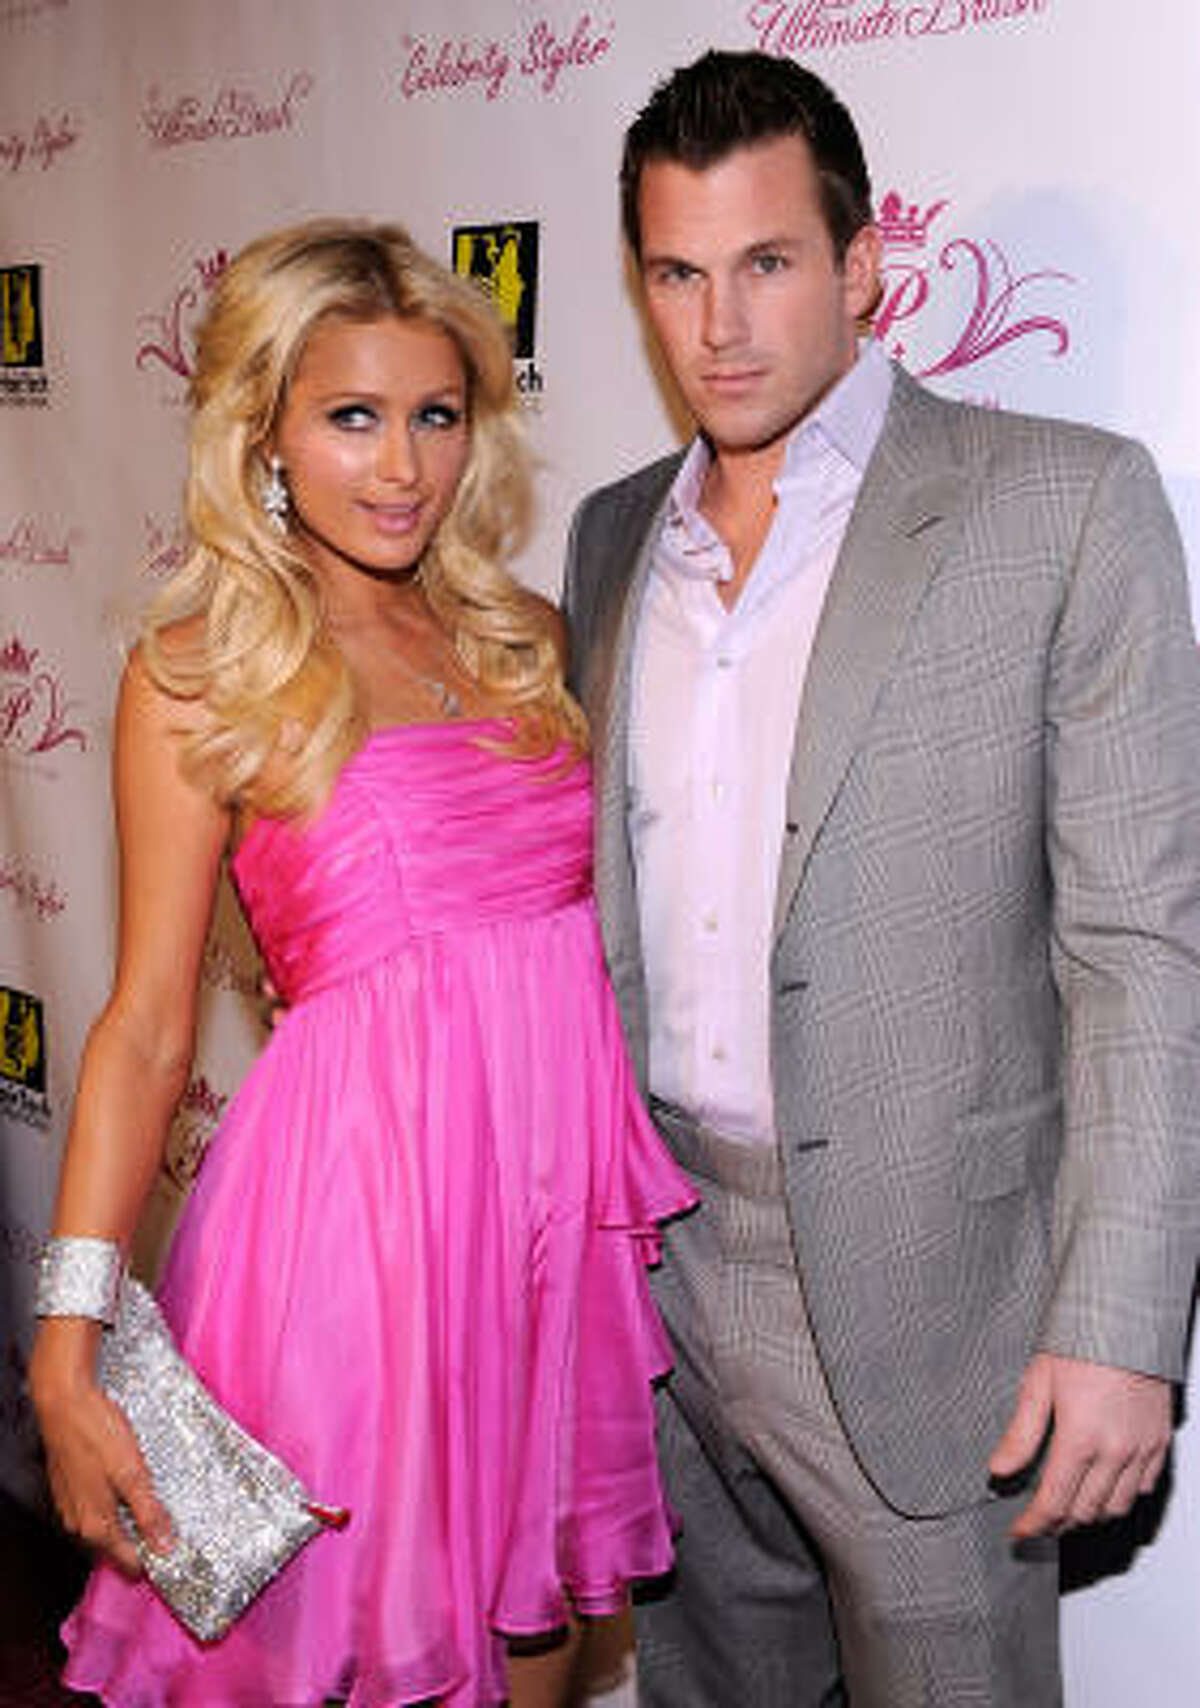 Paris Hilton: She is a trainwreck because of all the public fights she keeps getting into with her boyfriend and Doug Reinhardt, and the fact that the cops had to be called to her house.